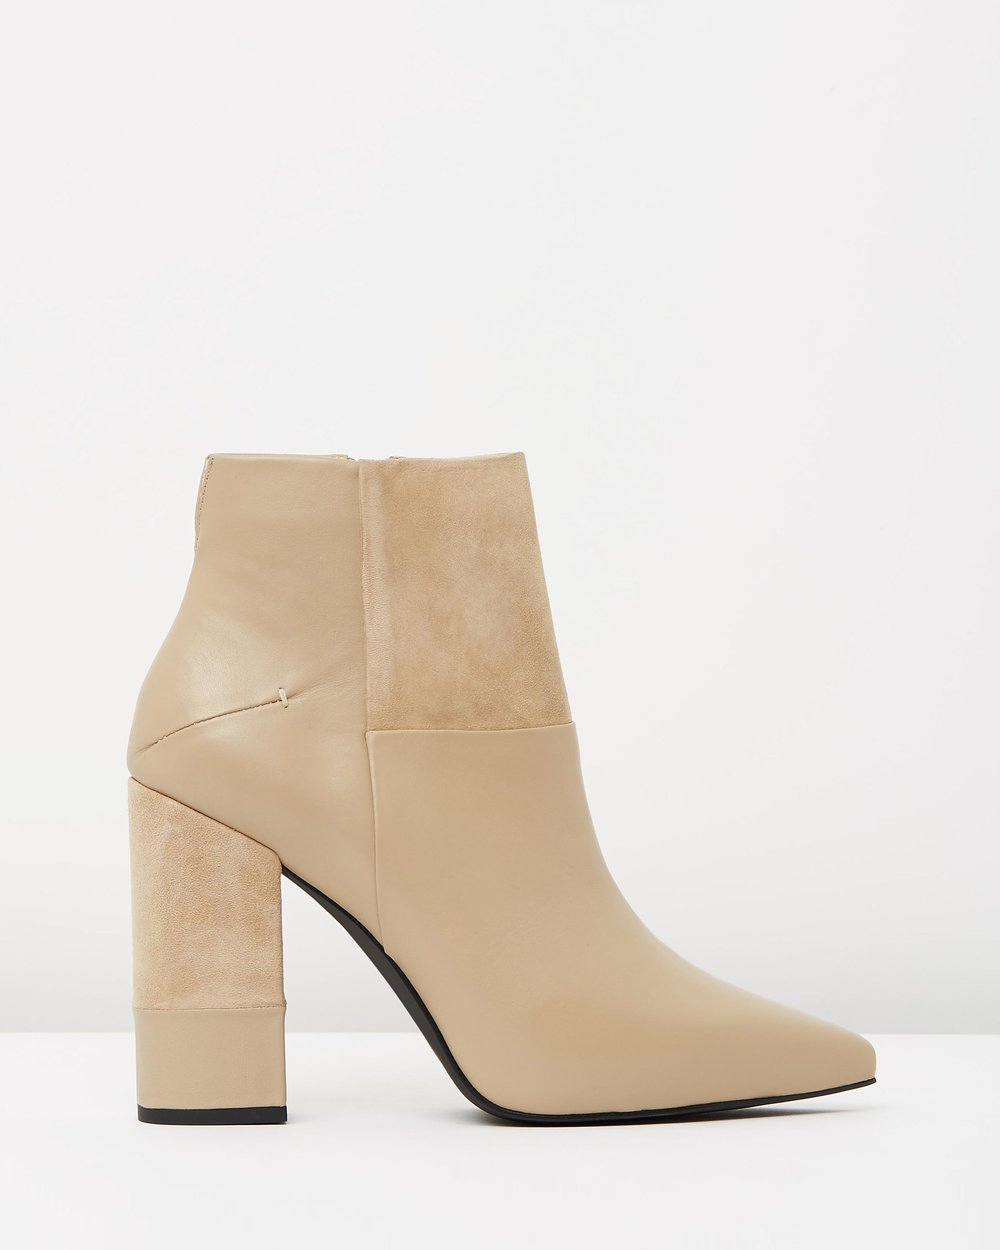 Senso  - Warren I Boot (Sand)   Was $379.90 > Now  $190   Sizes Available  : x1 37 x1 40 x1 41